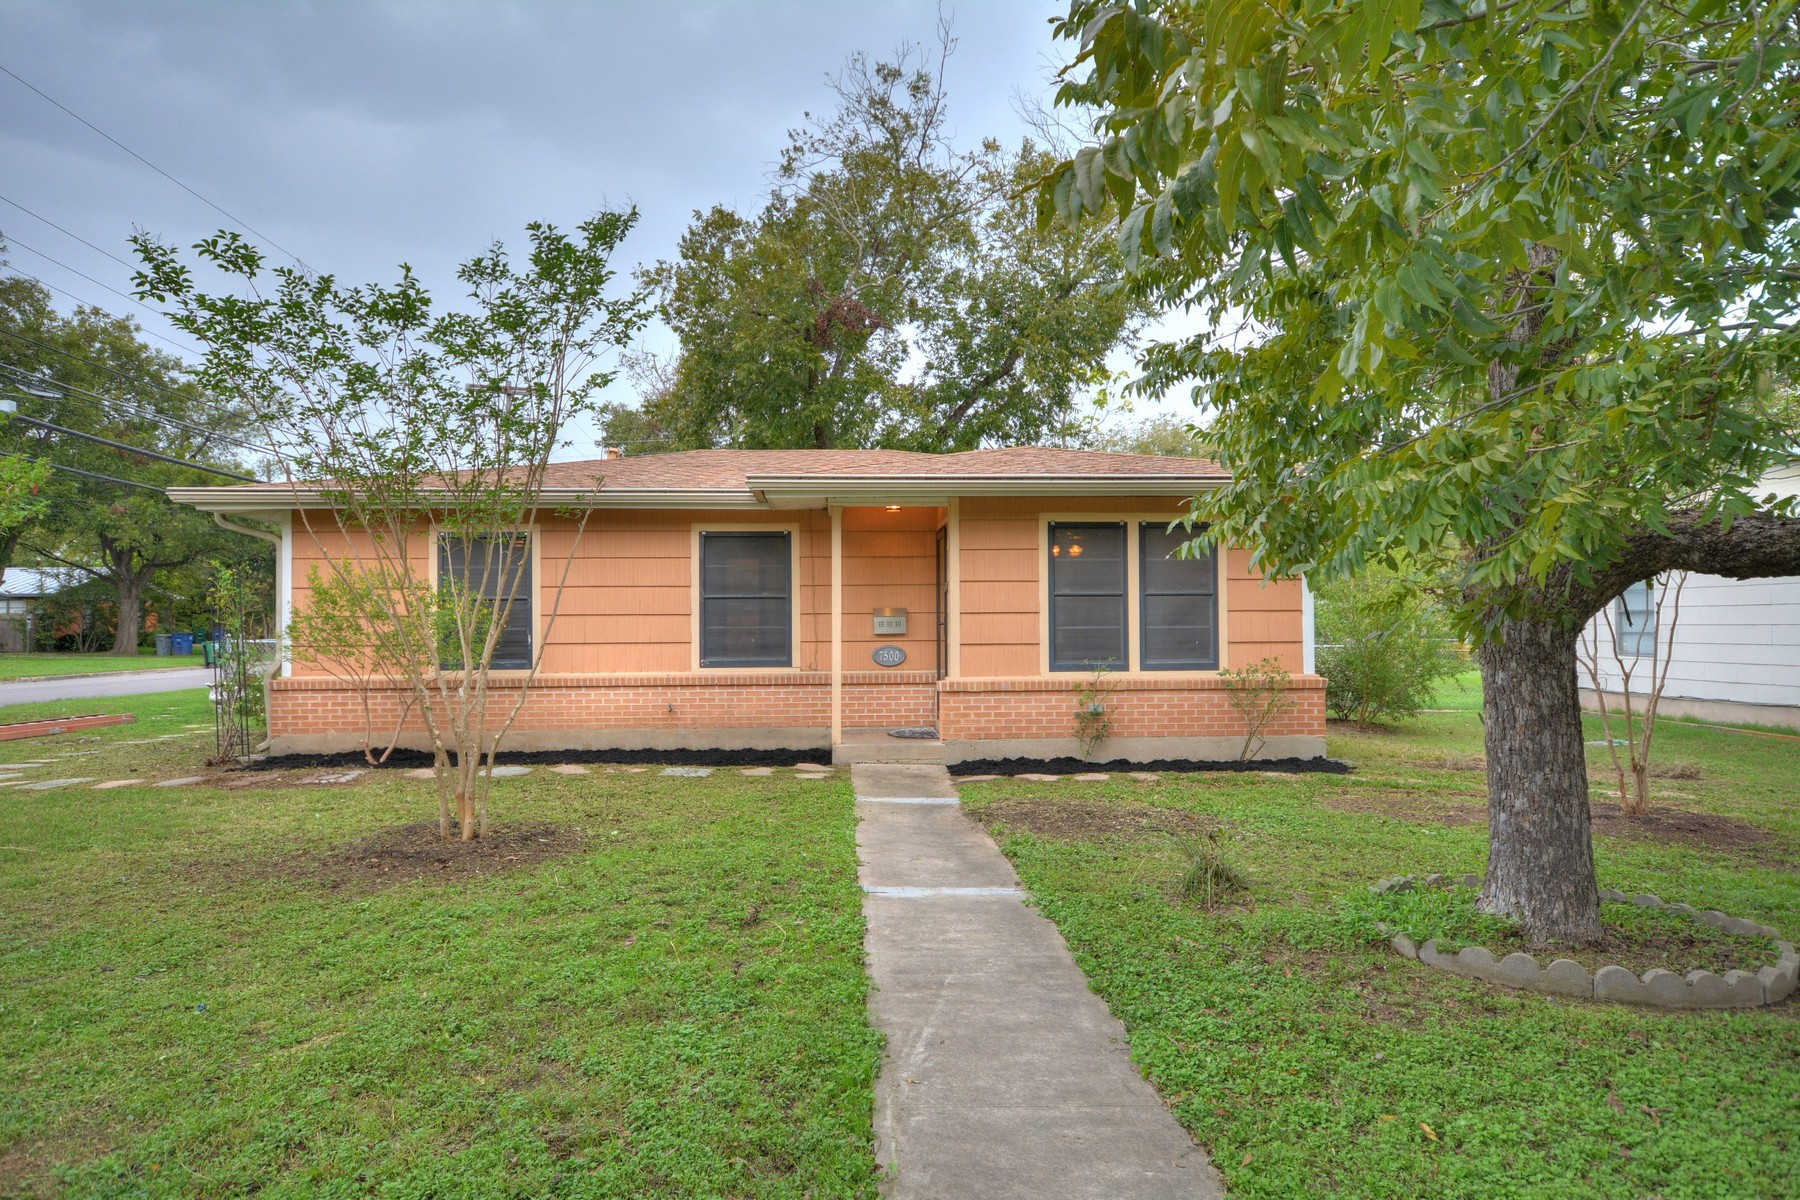 Single Family Home for Sale at Great Starter Home 7500 Saint Louis St Austin, Texas 78757 United States